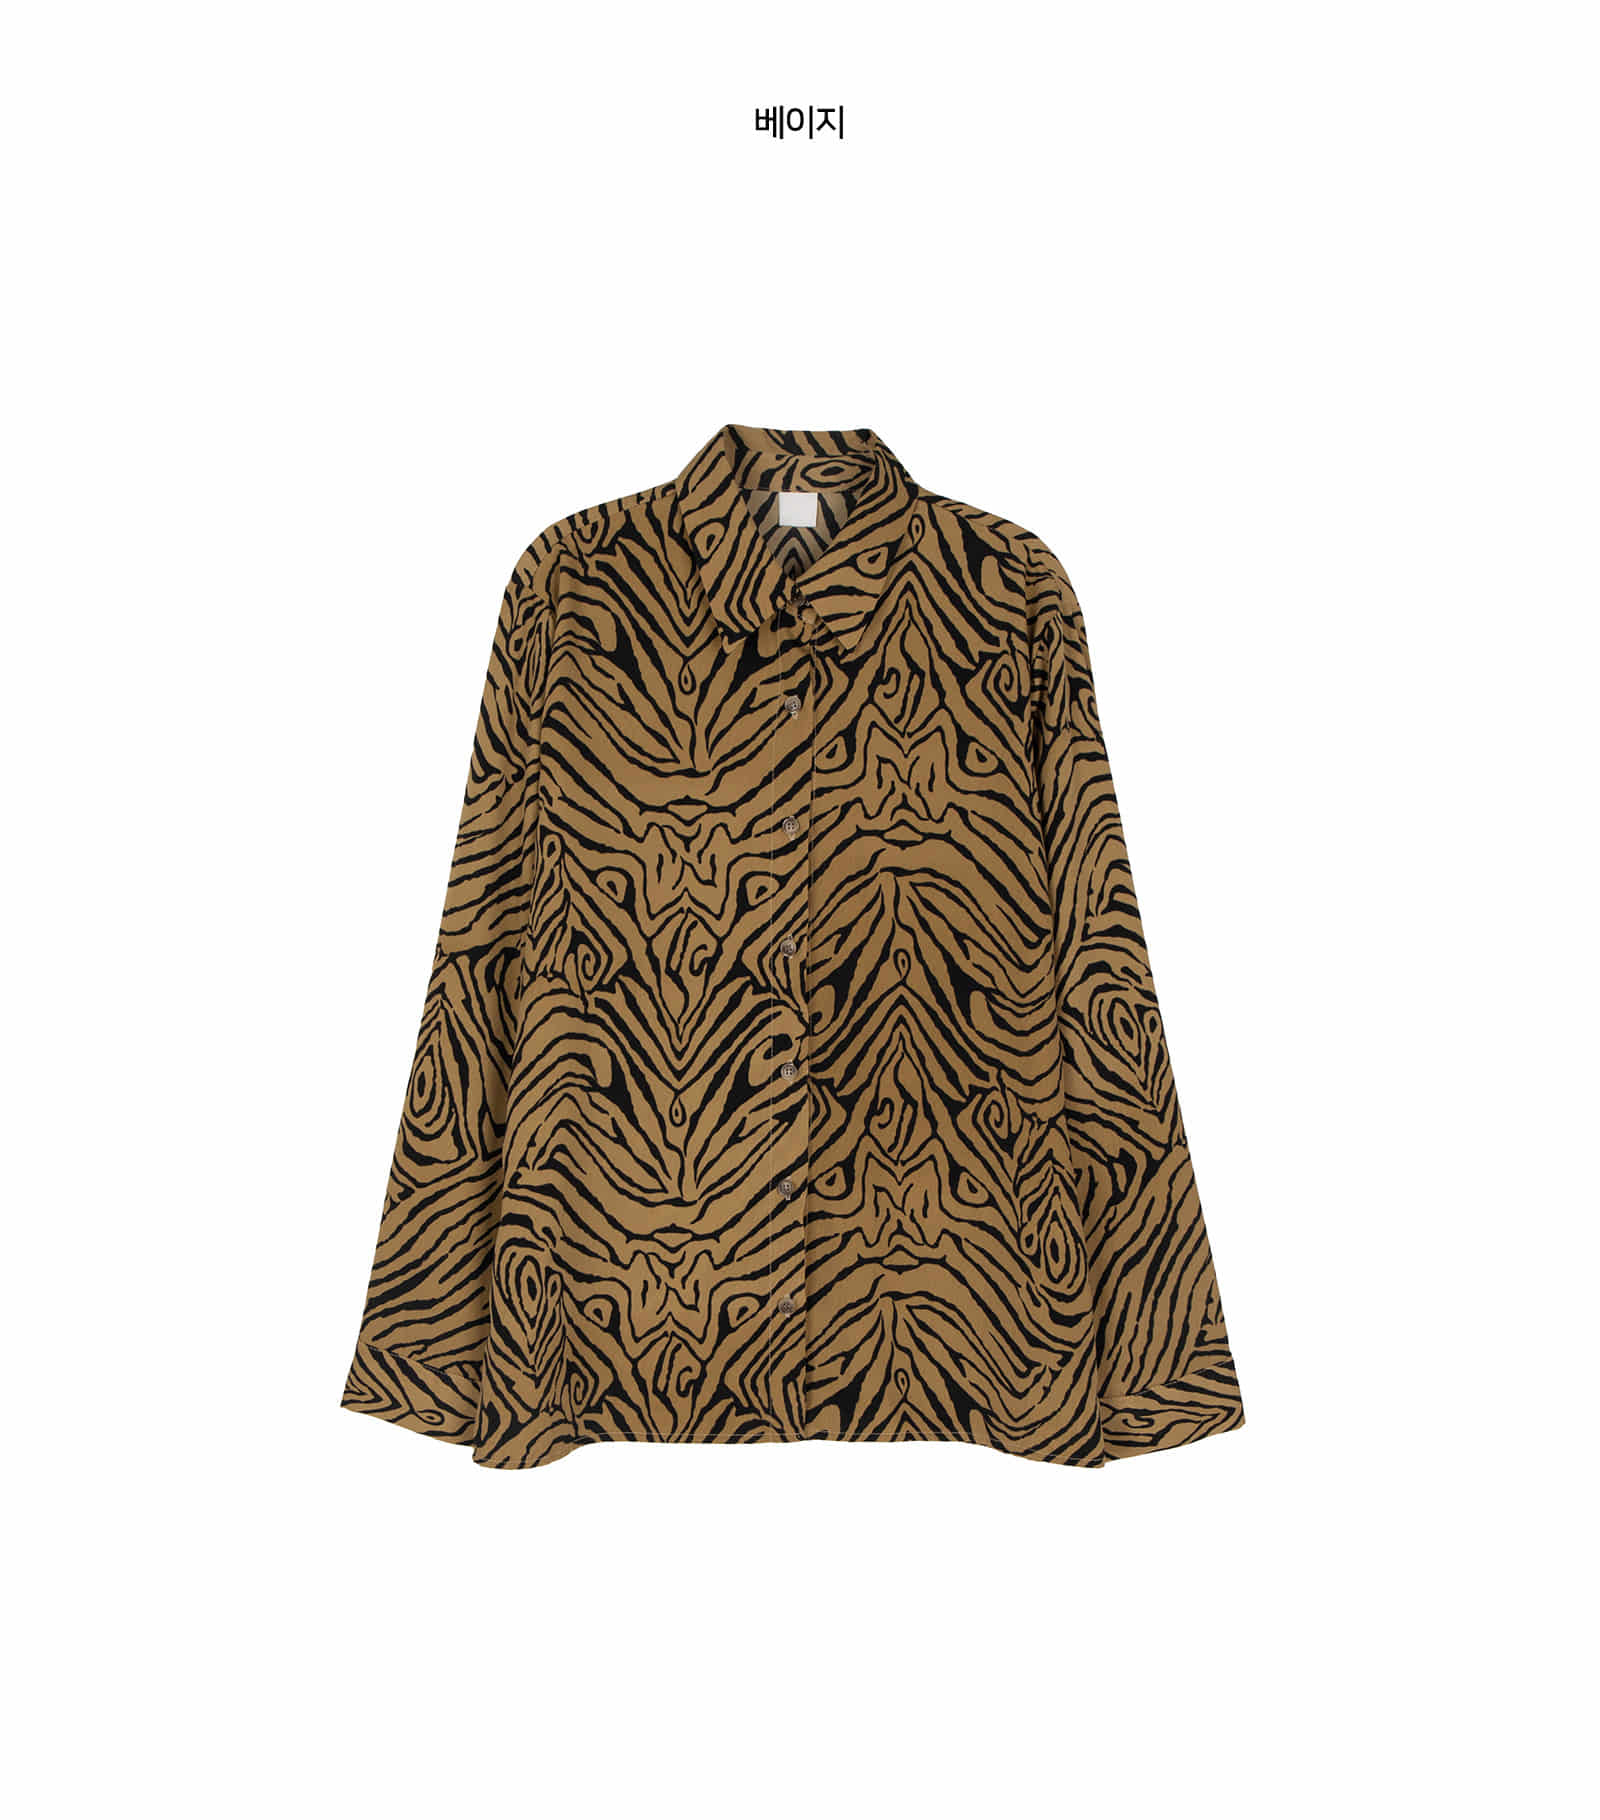 Stuffed zebra pattern shirt